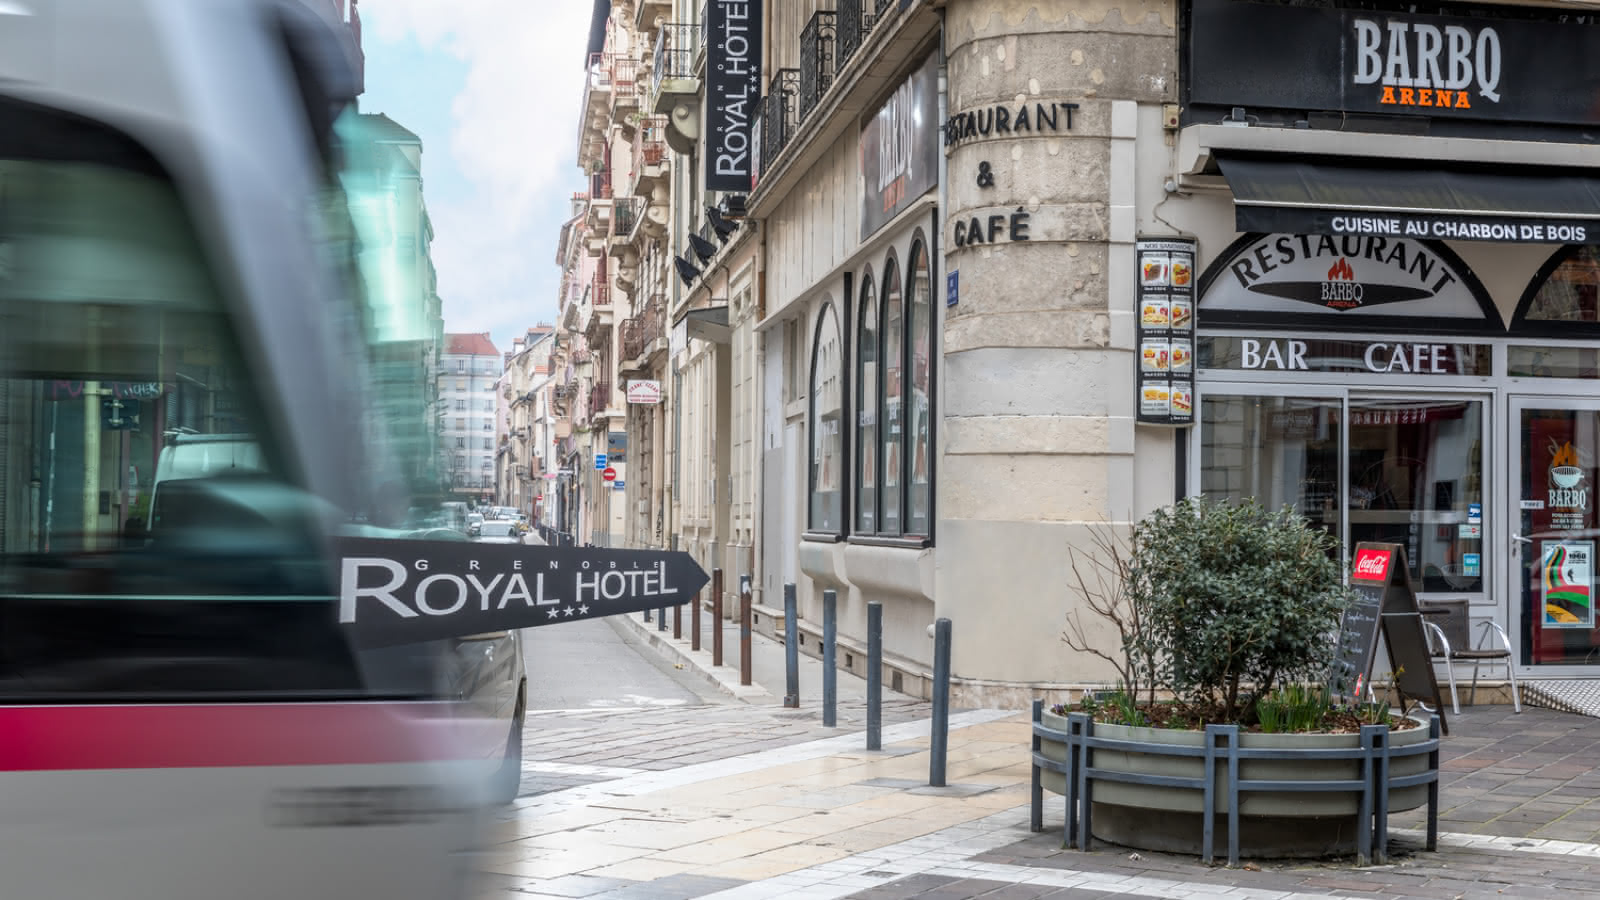 Royal Hotel Grenoble